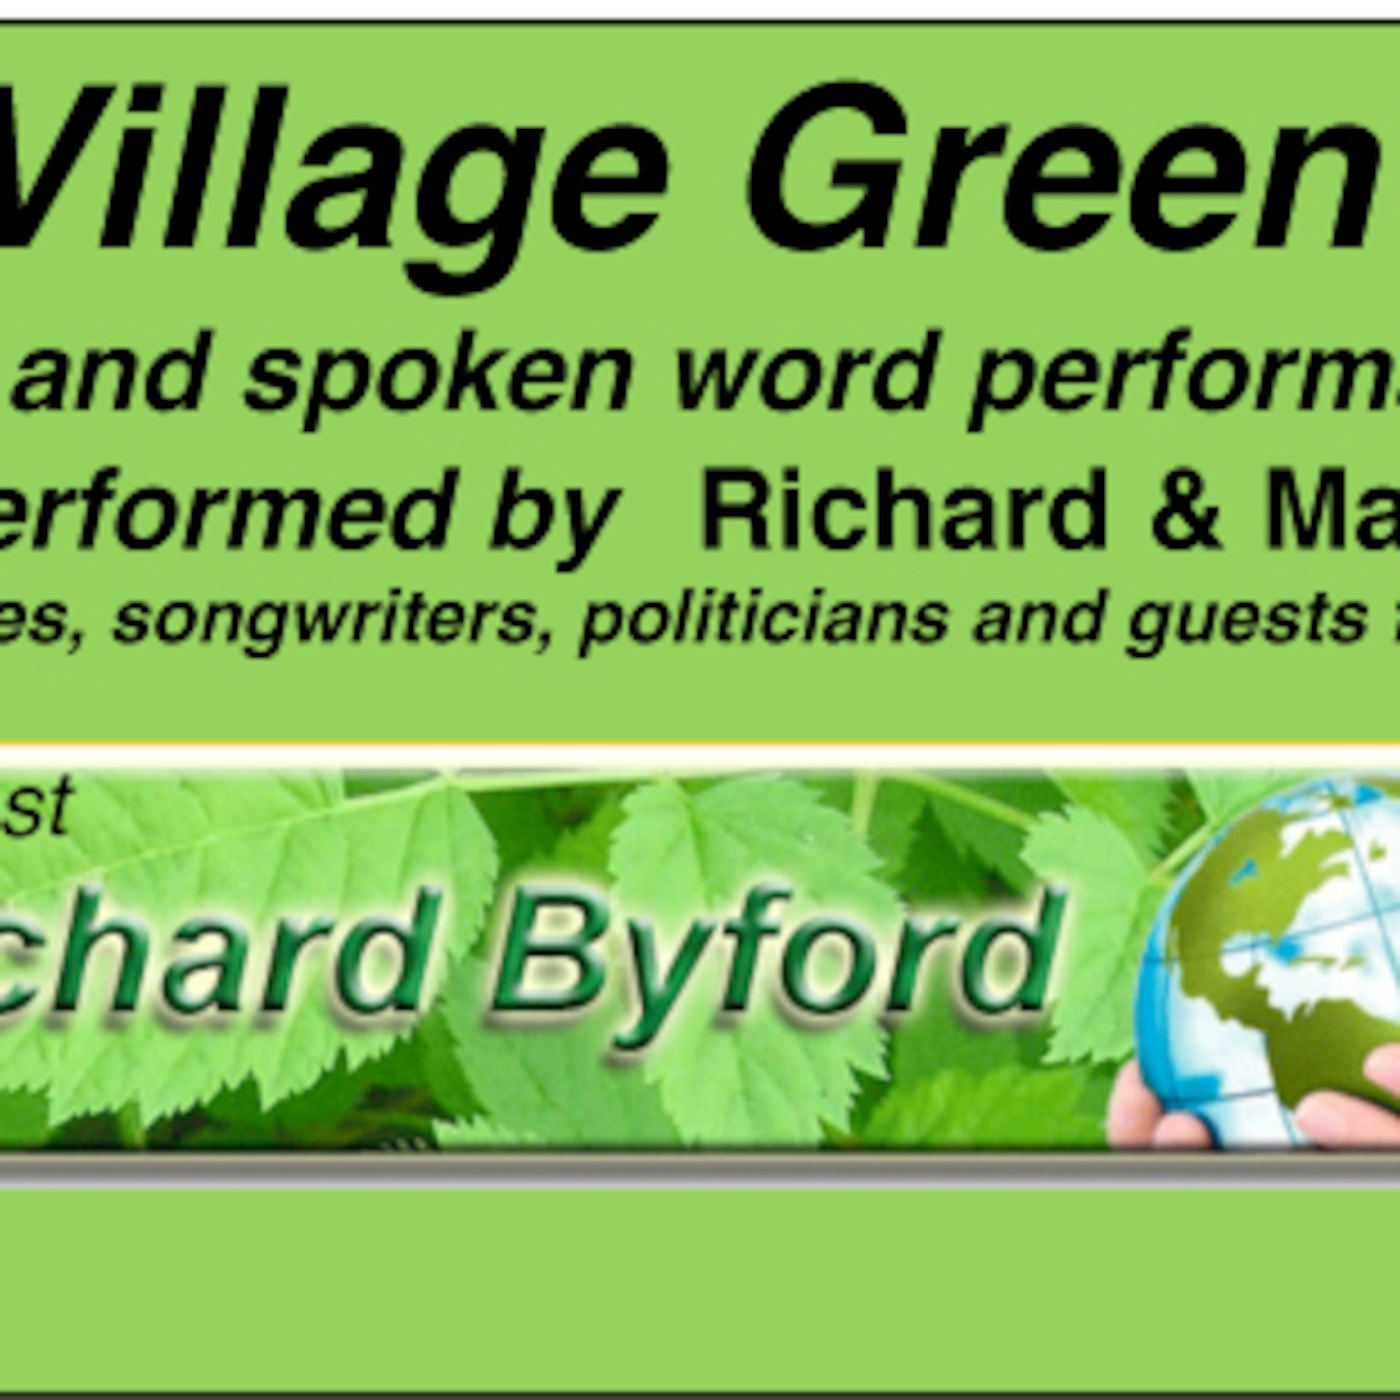 On The Village Green Podcast